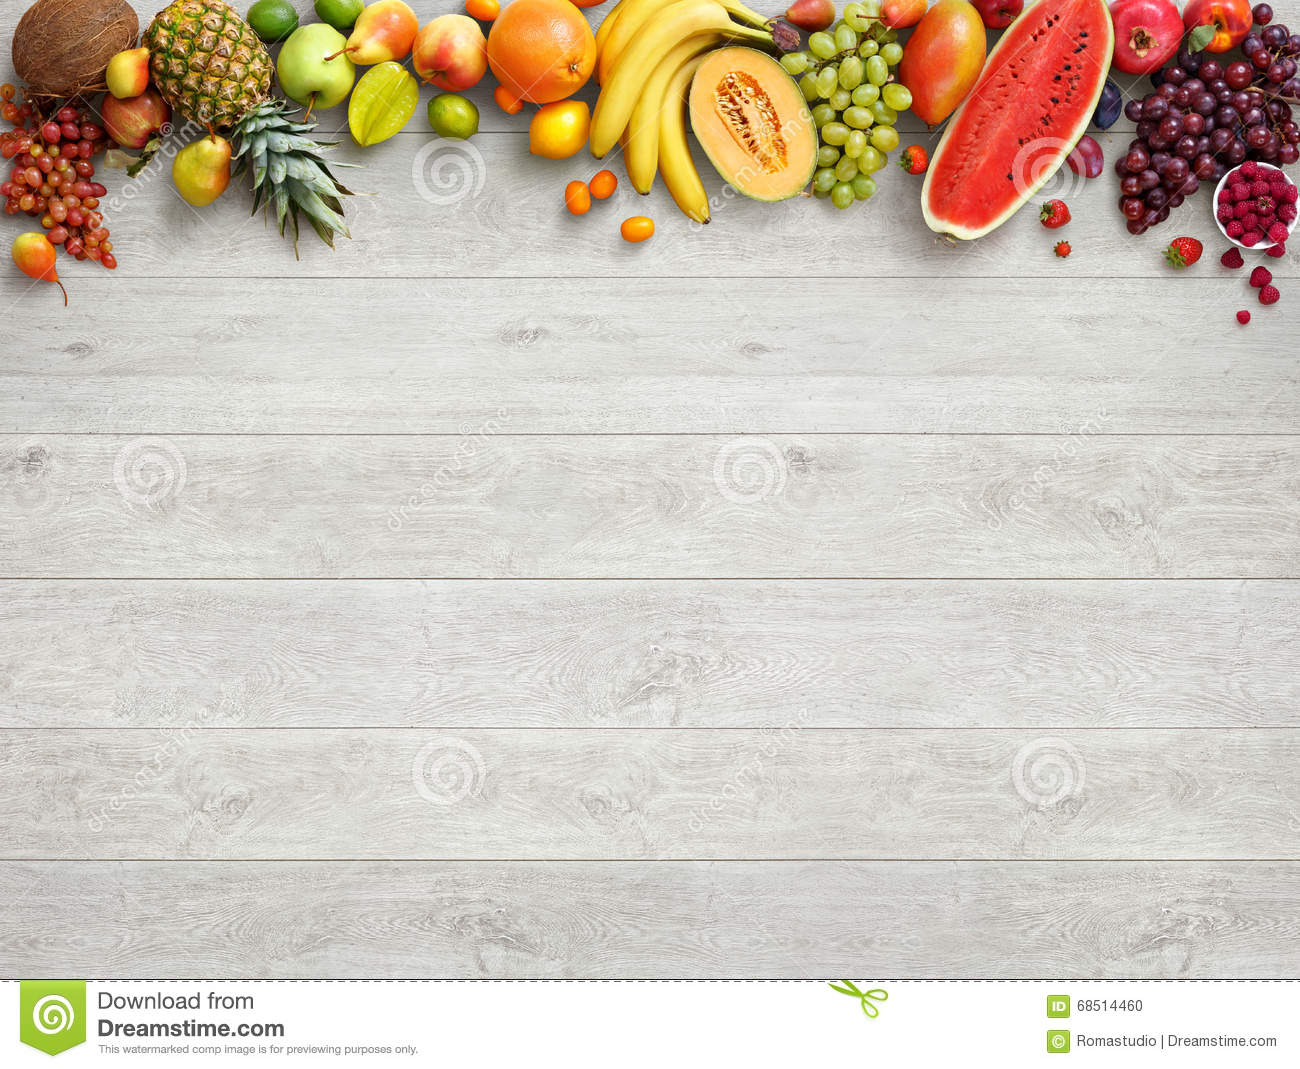 Healthy food background. Studio photo of different fruits